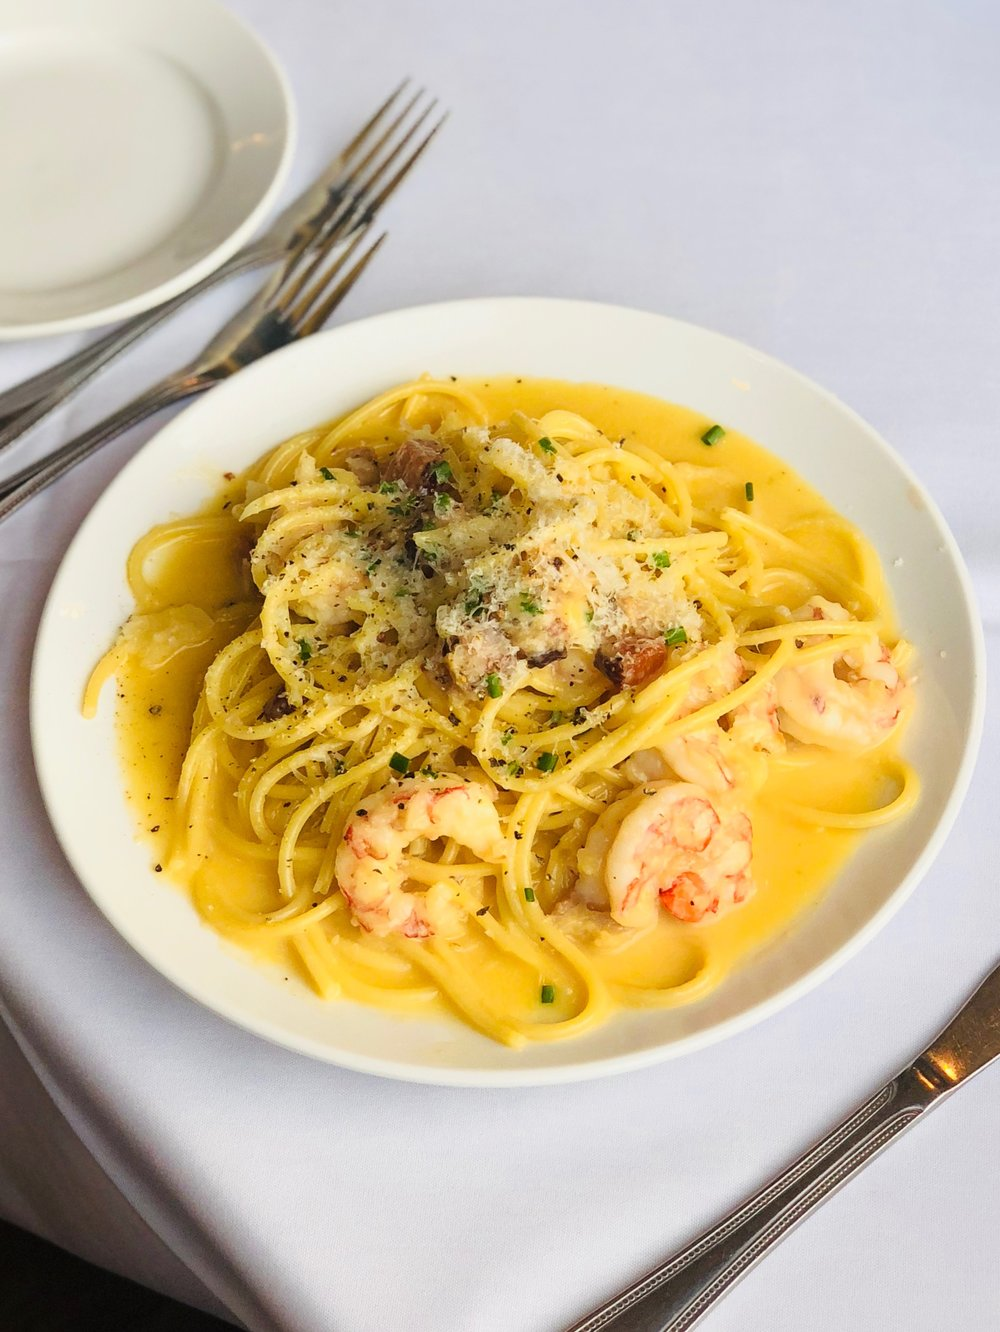 Shrimp Carbonara - Ruby Red Shrimp & Crispy Smoked Appel Belly Tossed in Creamy Pecorino Romano